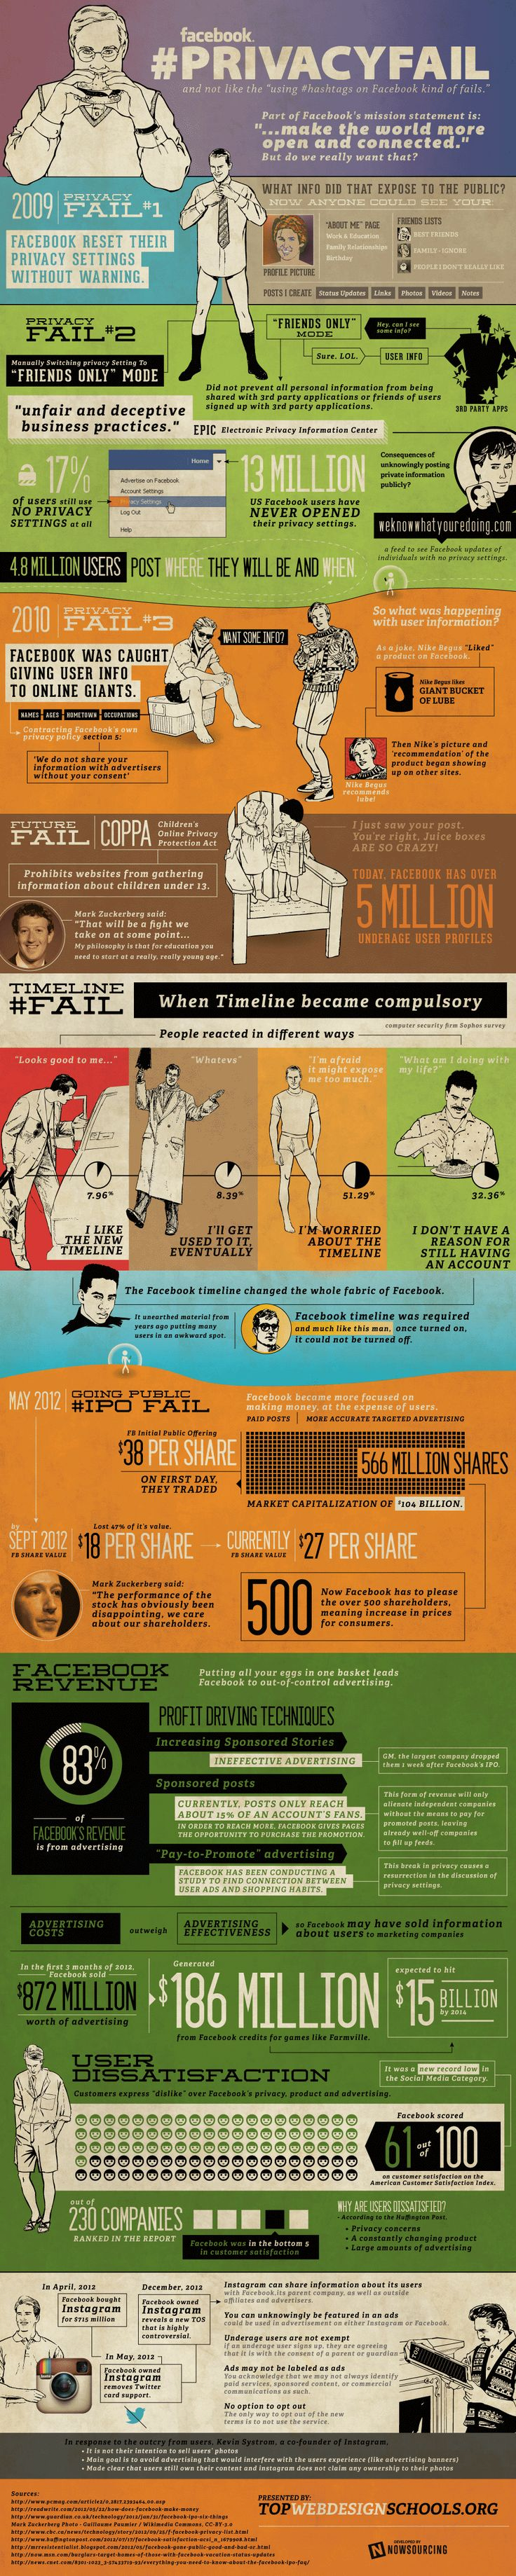 Facebook privacy failure #infographic